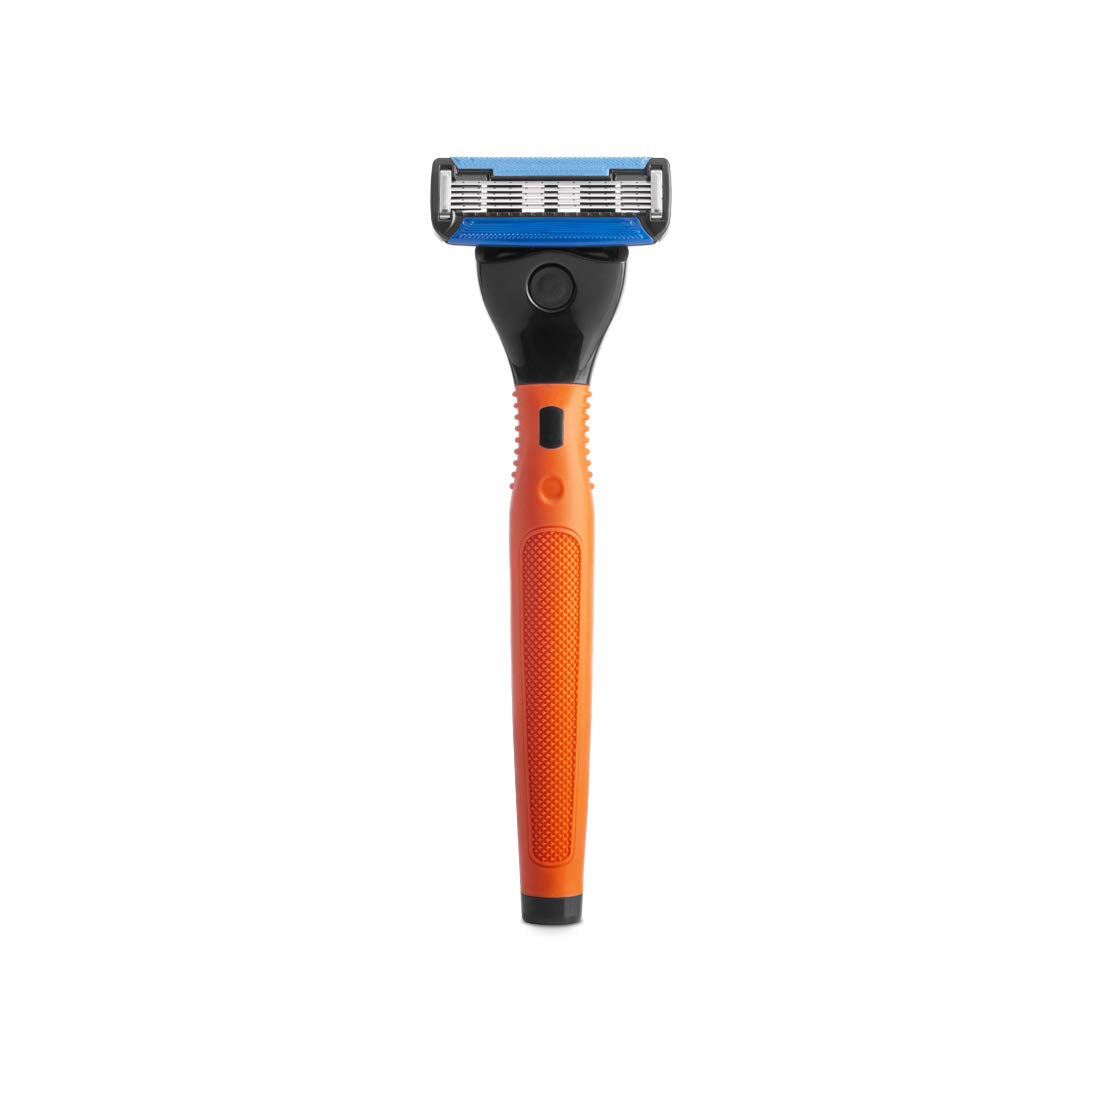 Ustraa Gear - 5 Blade Razor with contoured rubber handle and blades (Orange) product image